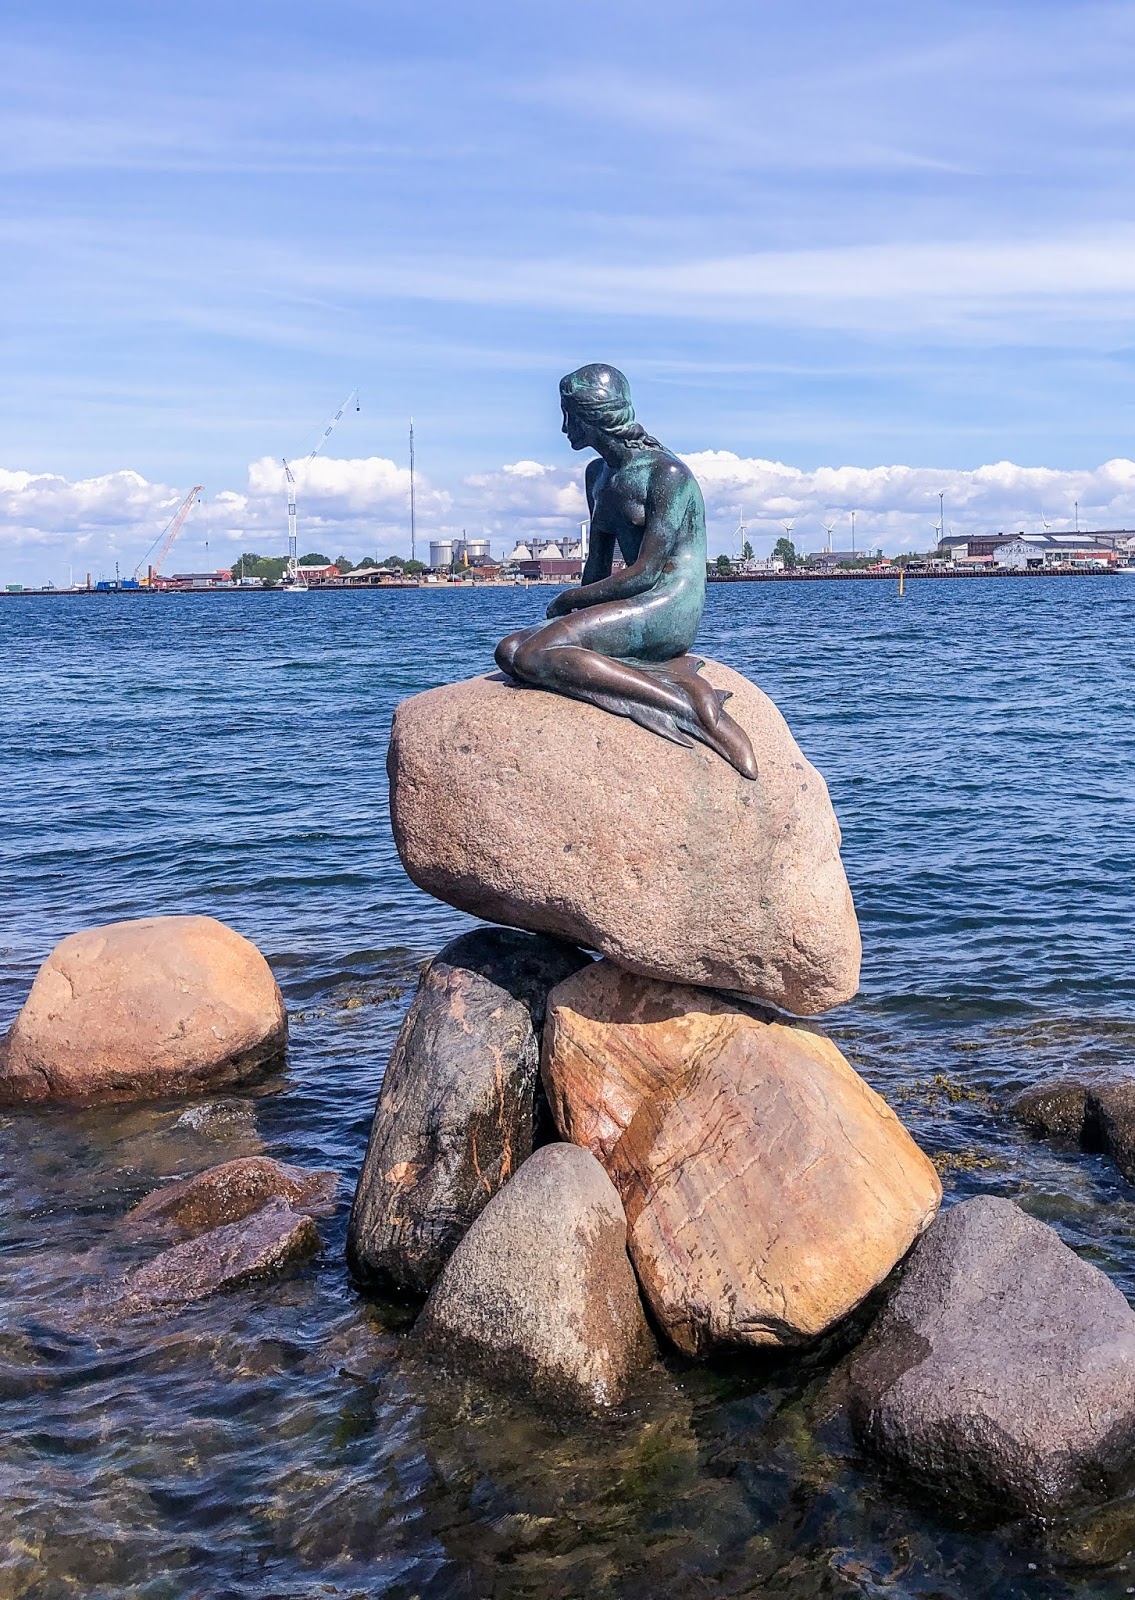 the little mermaid statue in Copenhagen on rocks against blue water and sky